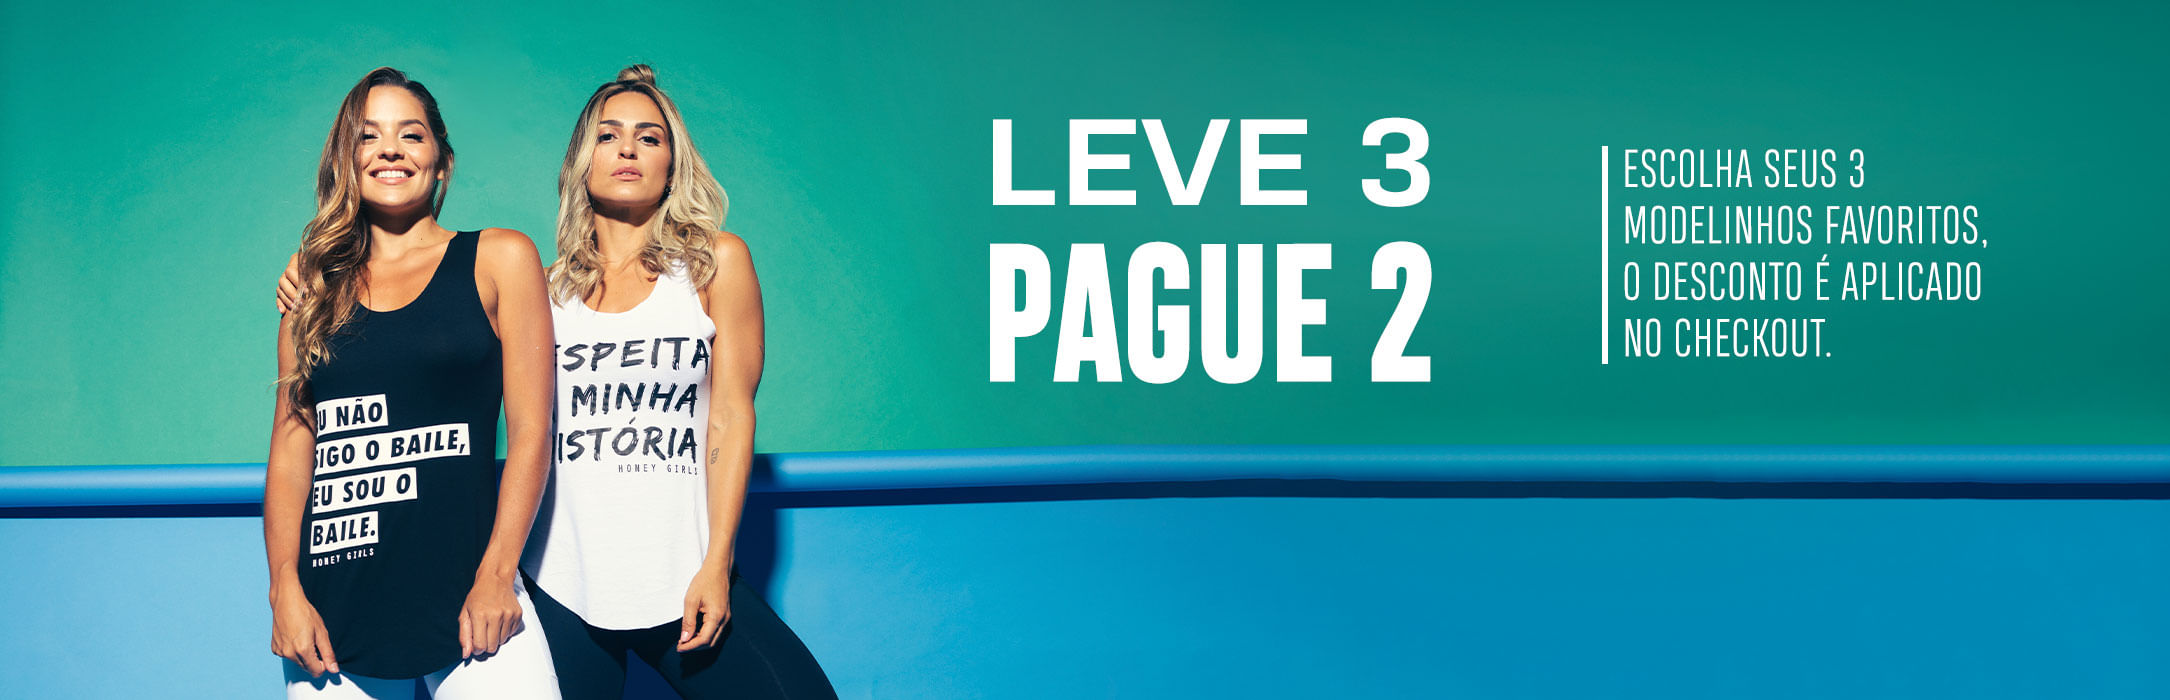 Camisetas - Leve 3 Pague 2